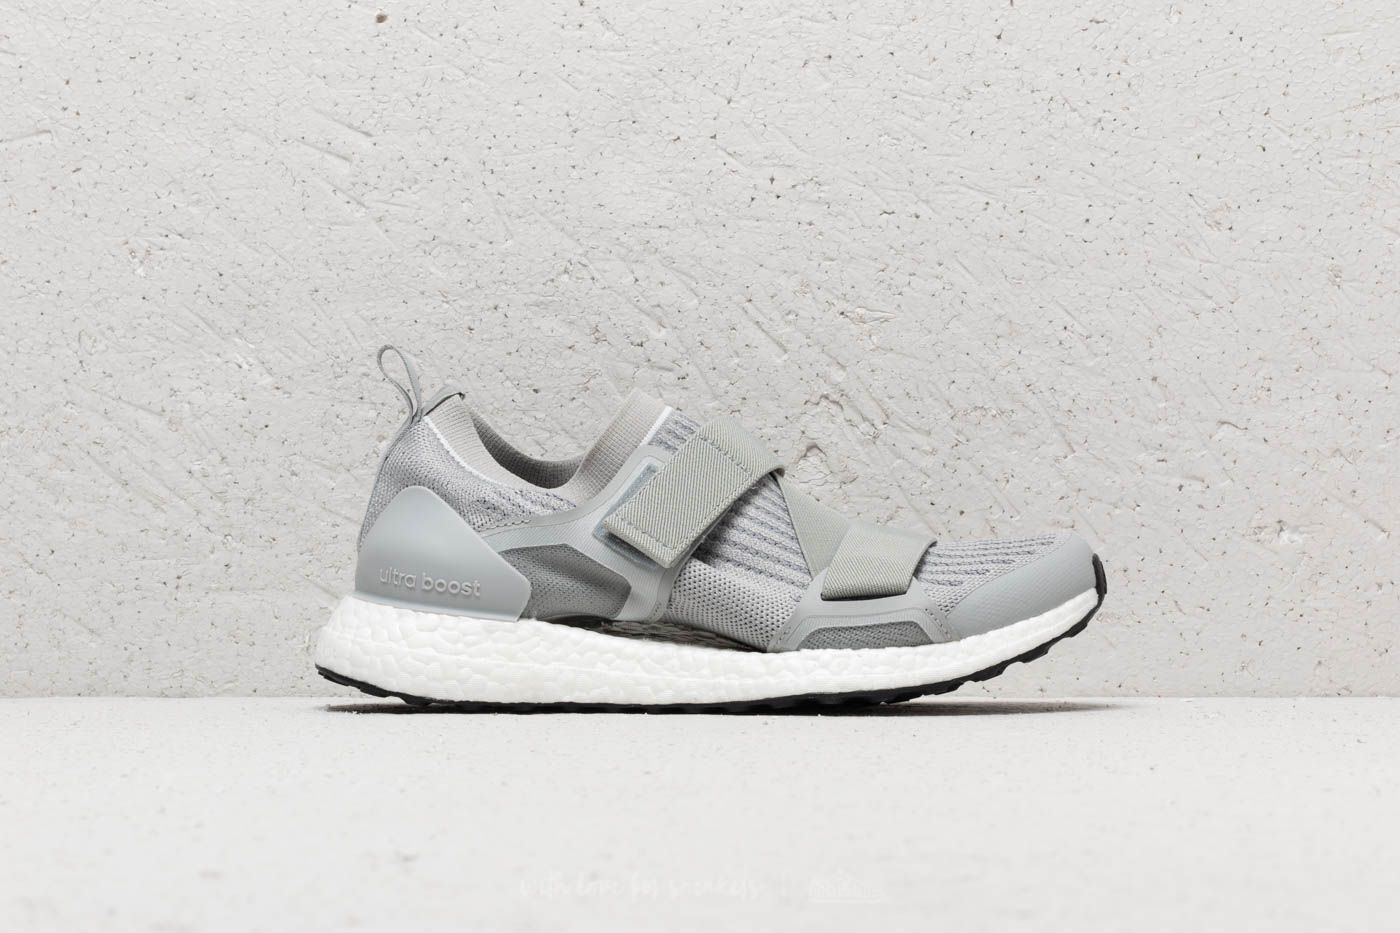 f0aaf051726 adidas x Stella McCartney Ultraboost X S. Stone  Mid Grey  Core Black at